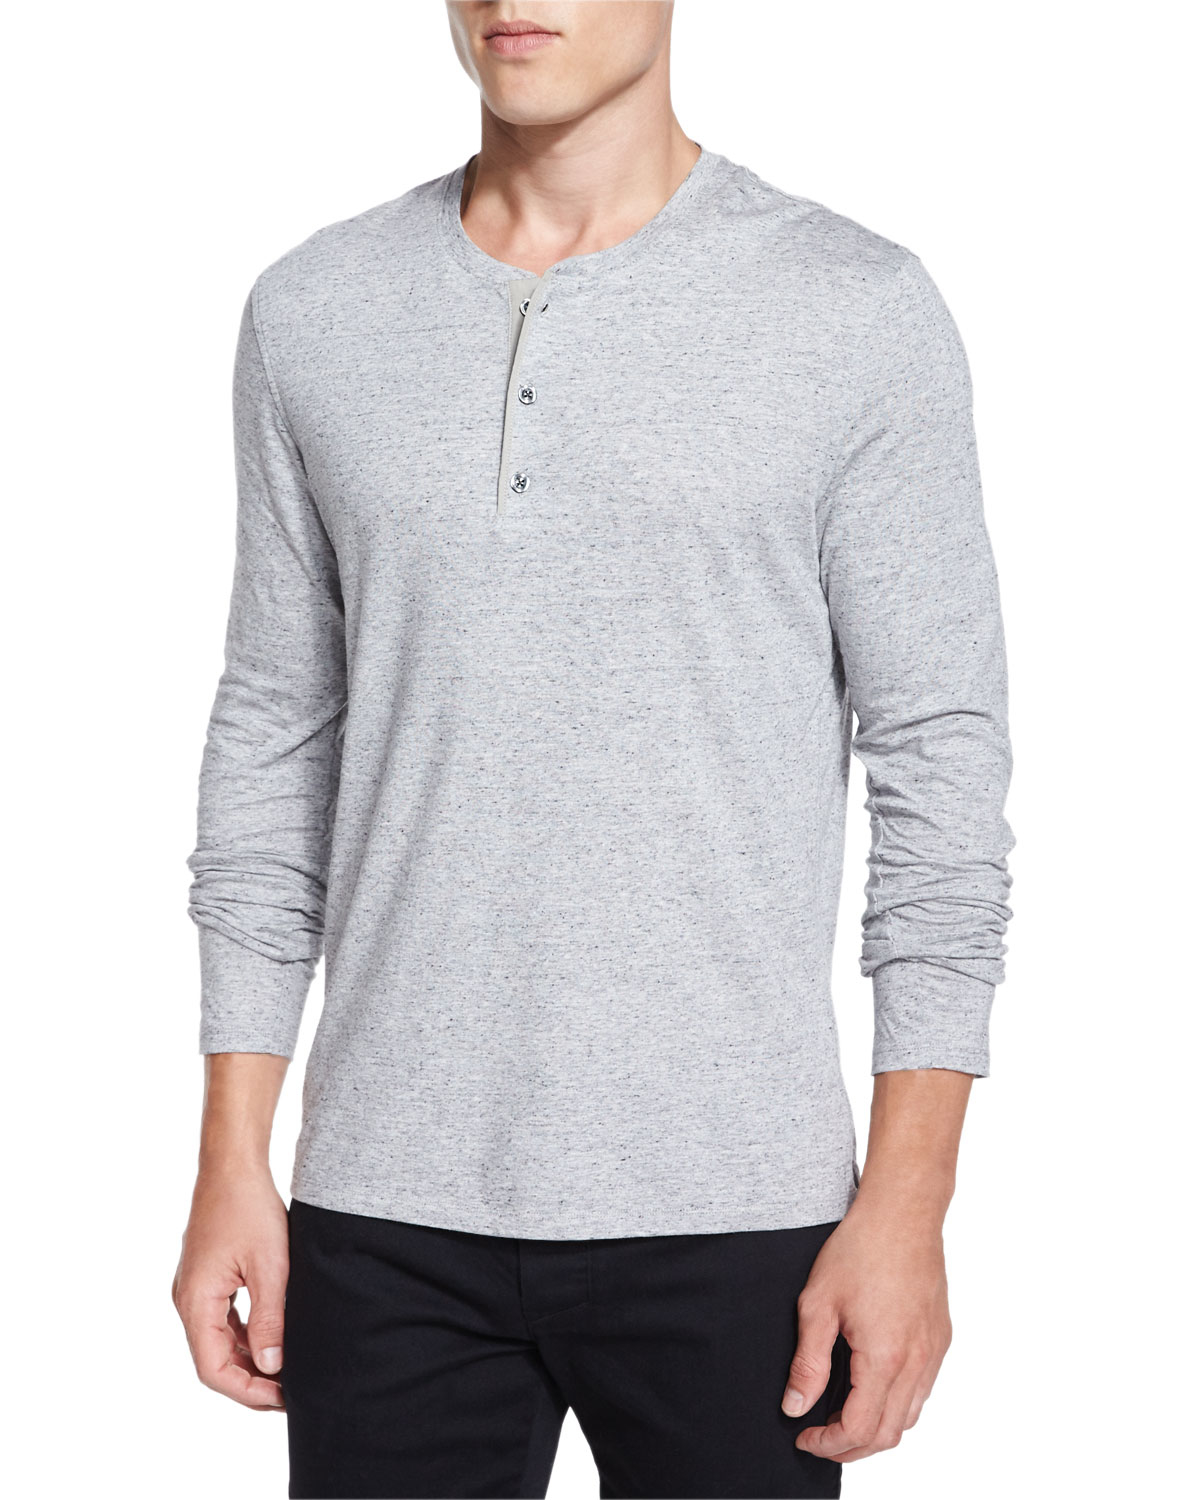 Shop from the world's largest selection and best deals for Long Sleeve Henley T-Shirts for Men. Free delivery and free returns on eBay Plus items.